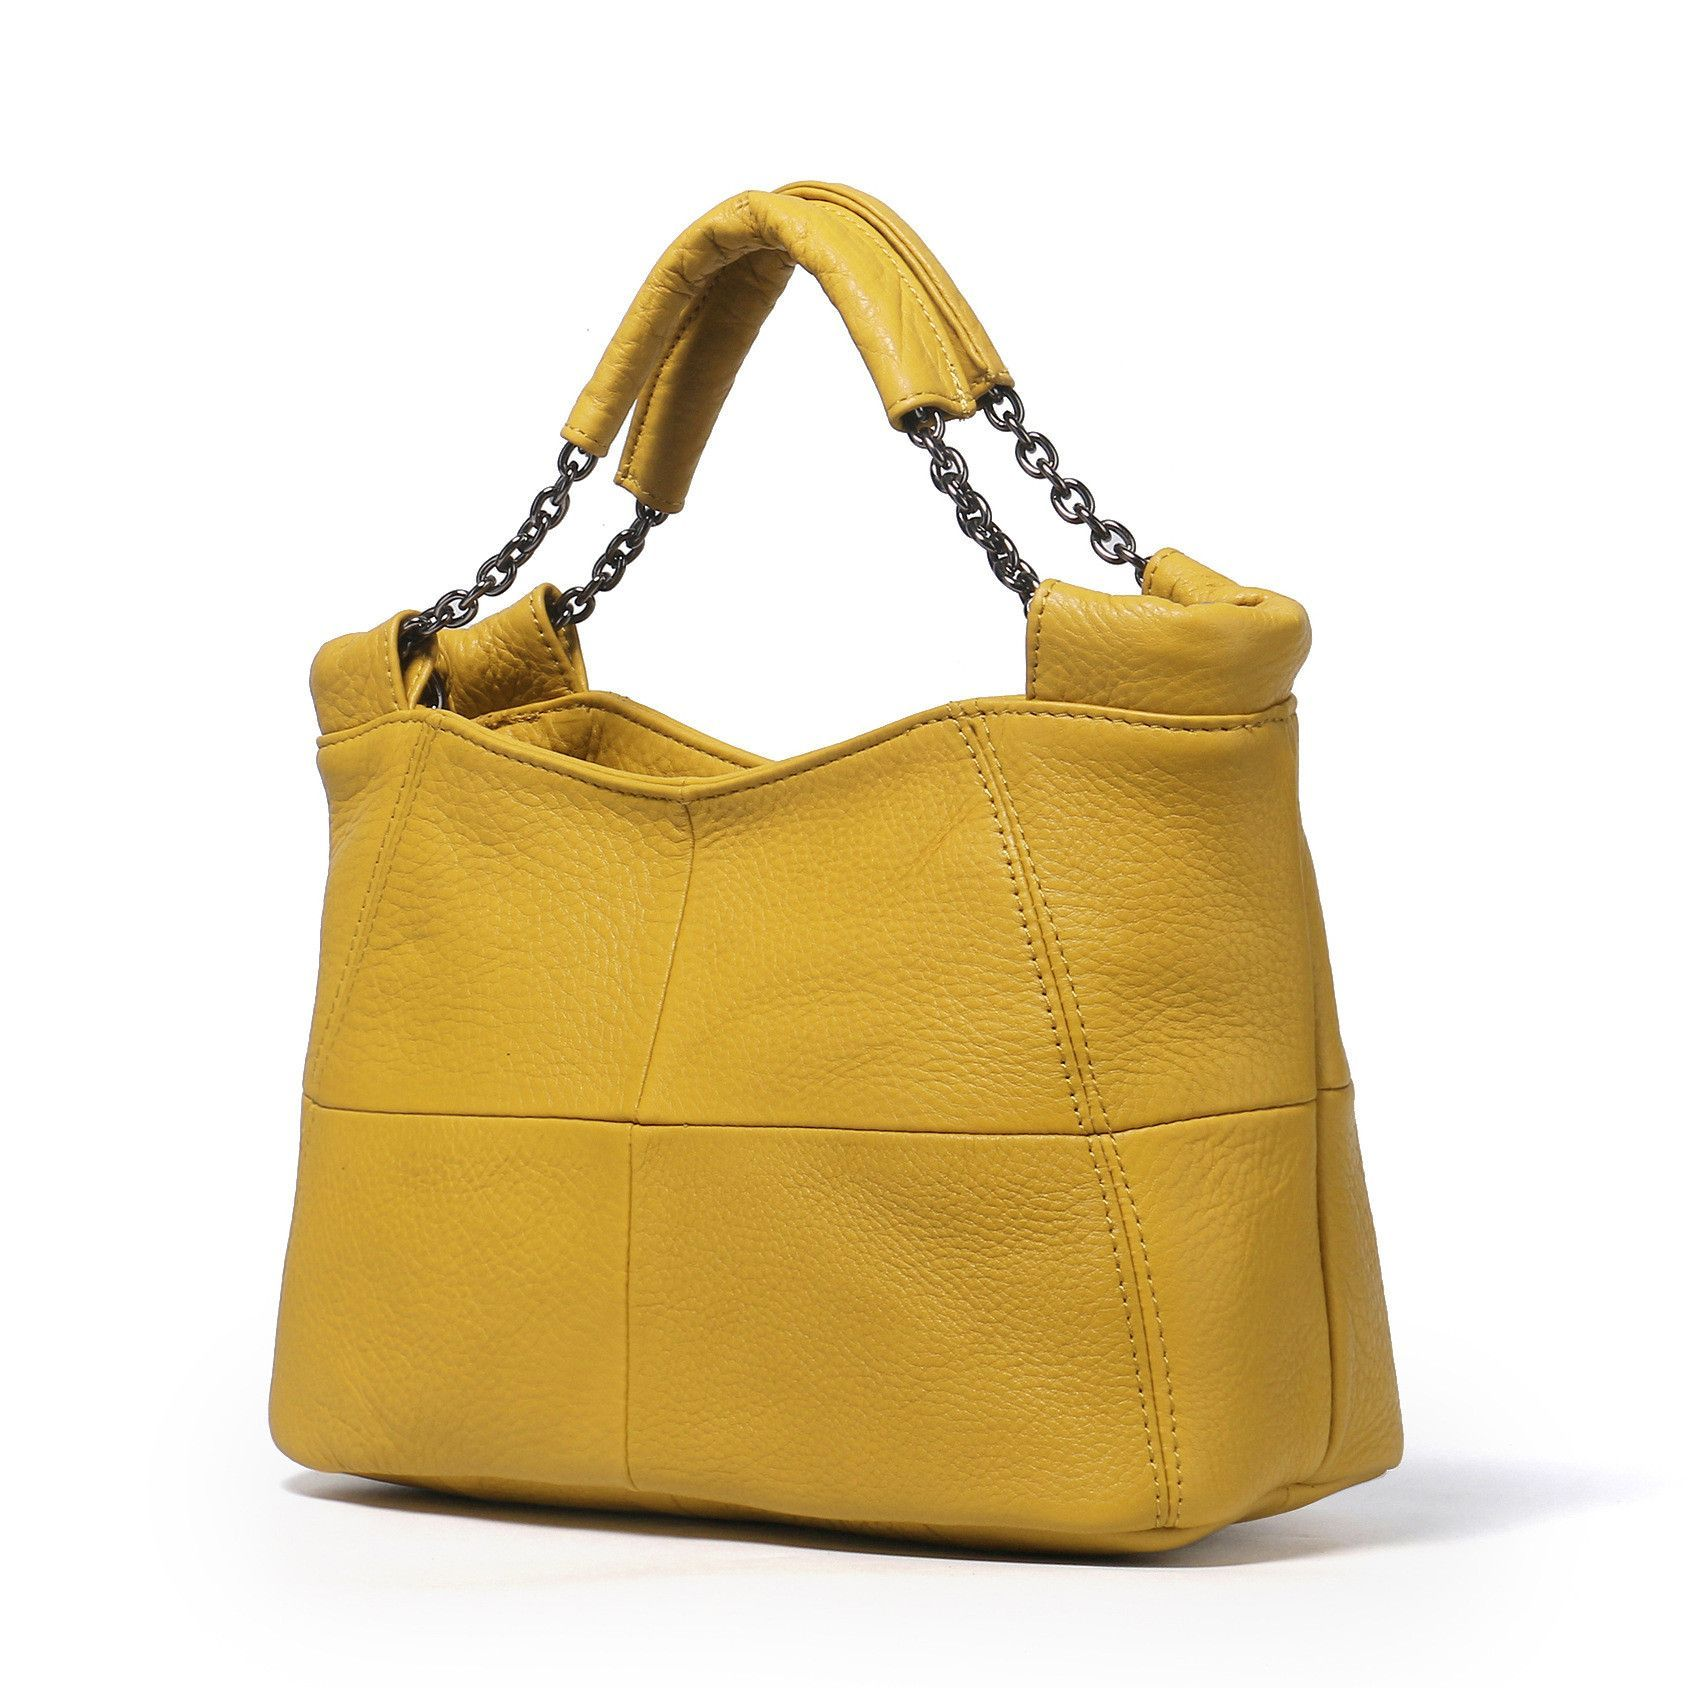 Best Special Offer New Bucket Quality Genuine Leather Women Handbags 2017 Brand Tote Bag Plaid Top Handle Famous Designer Totes